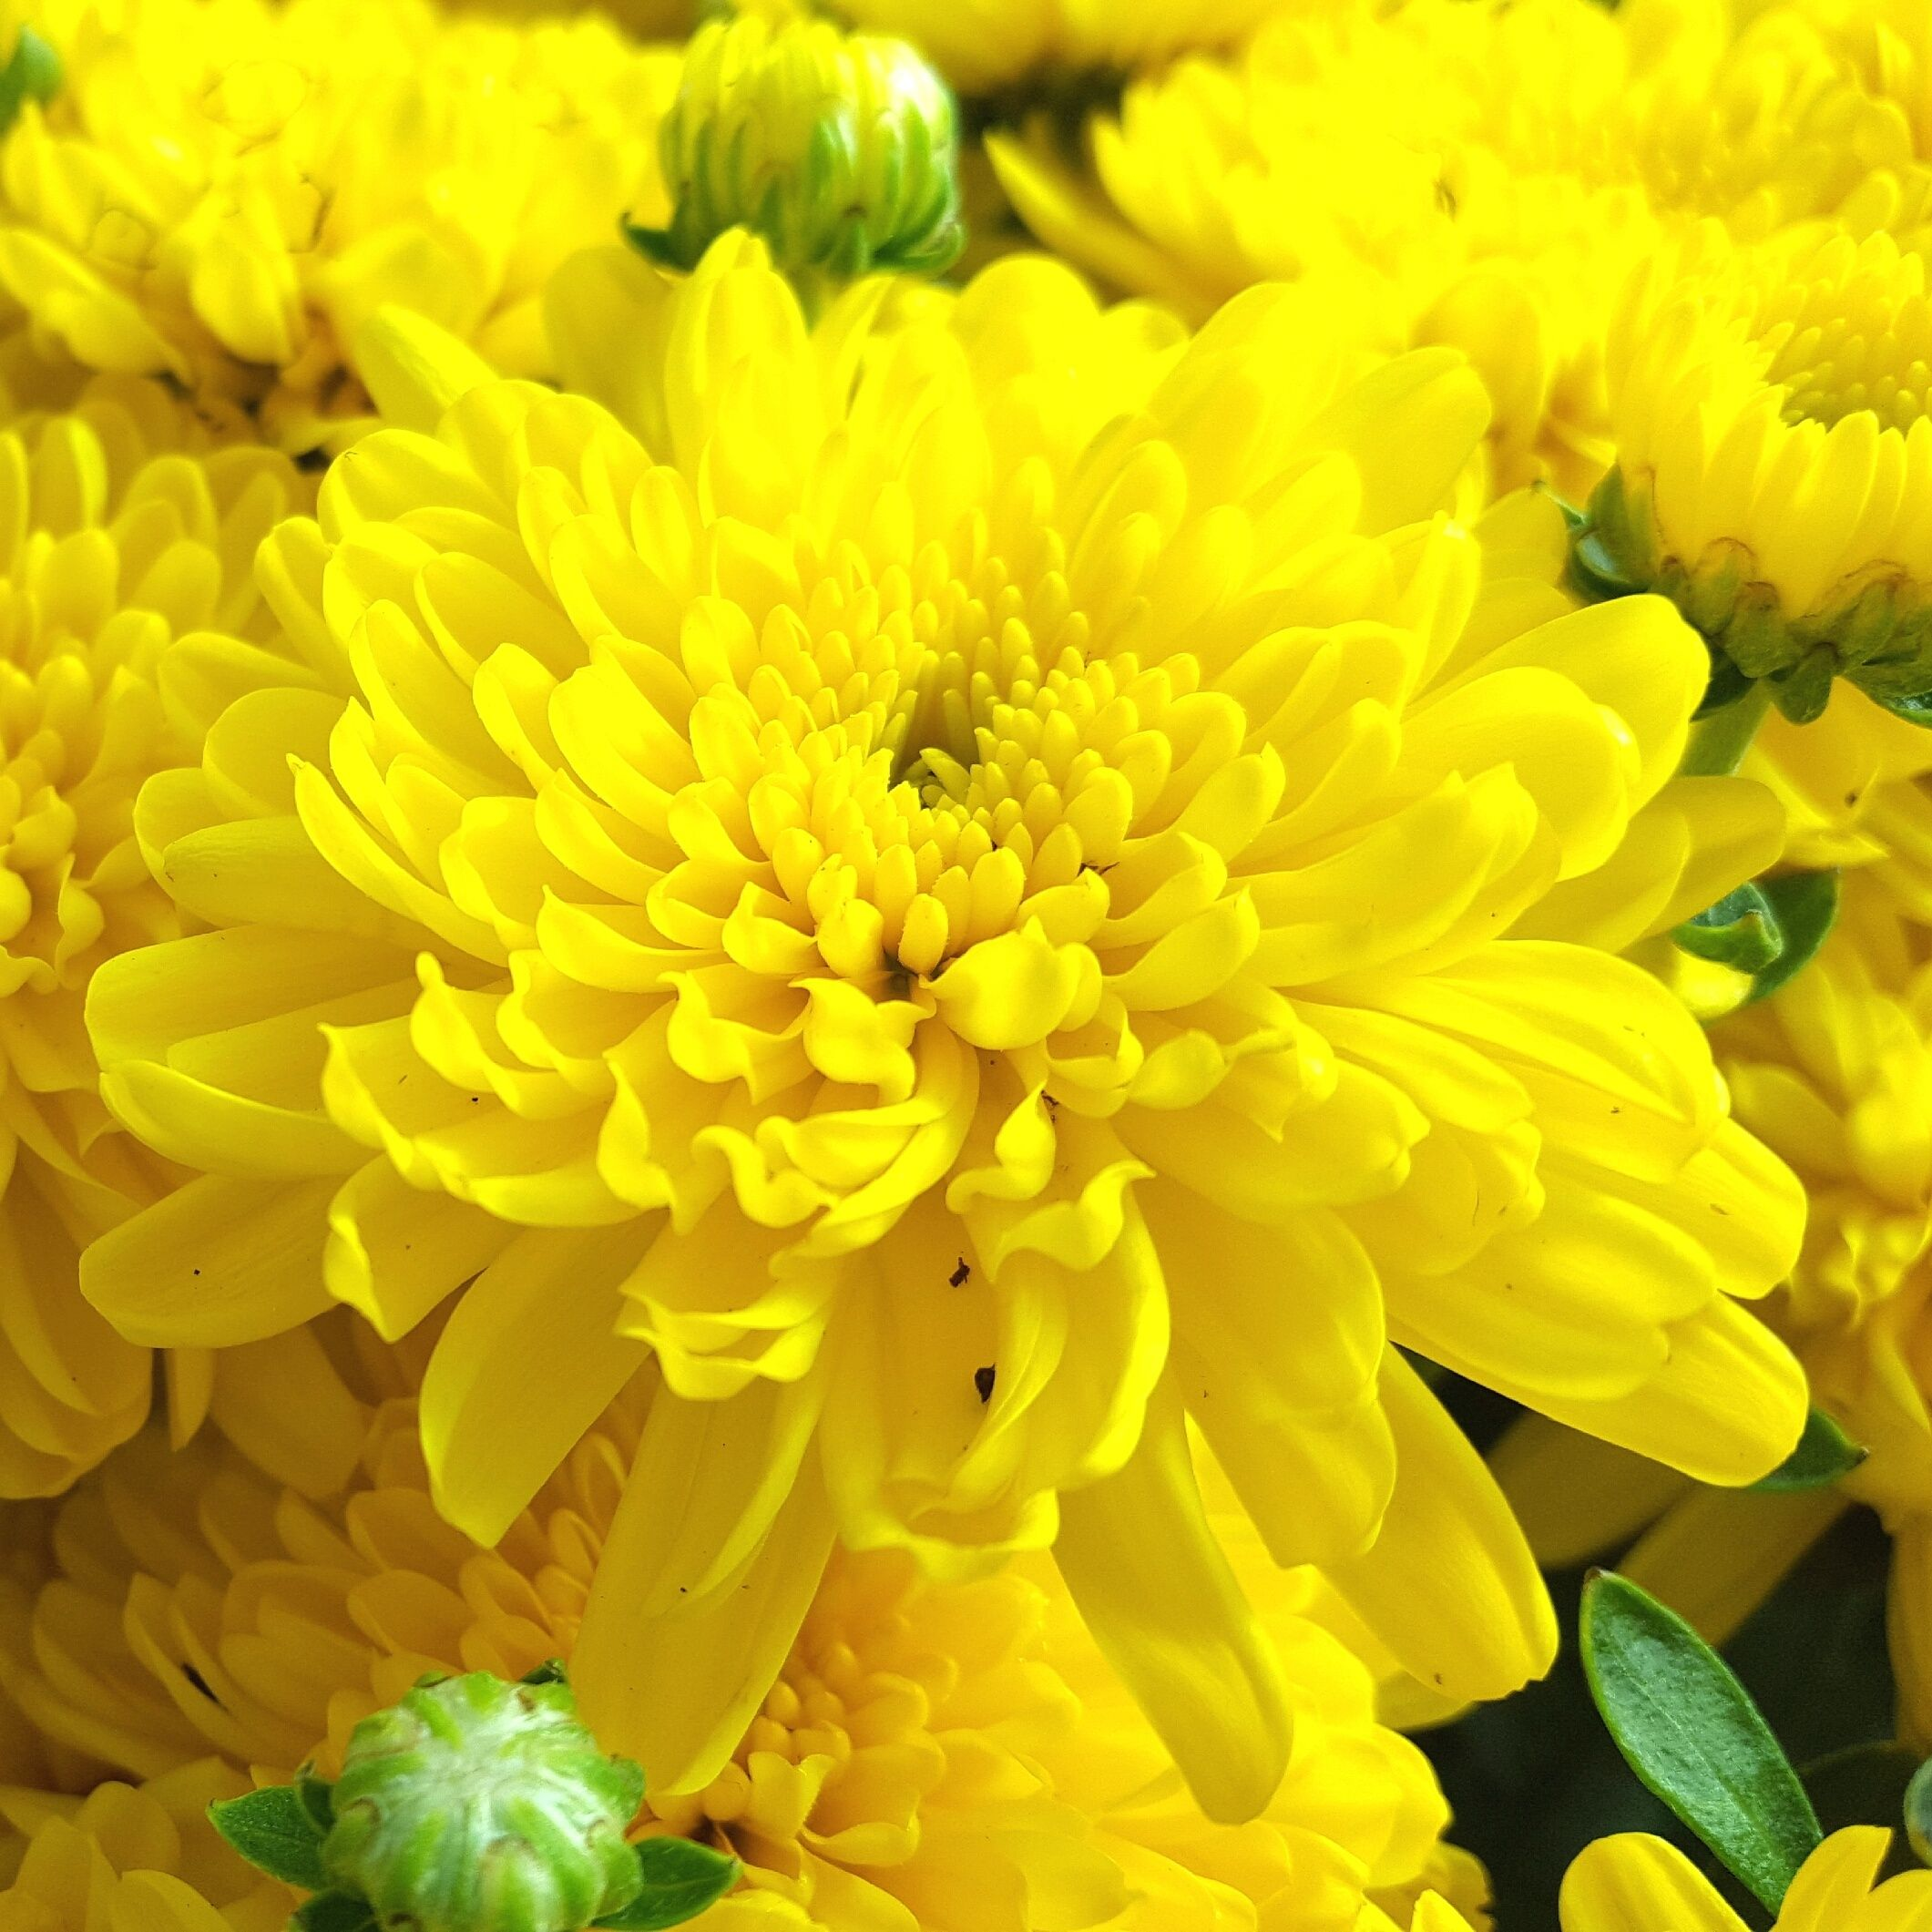 Gorgeous Fall Mums | The Family Tree Garden Center